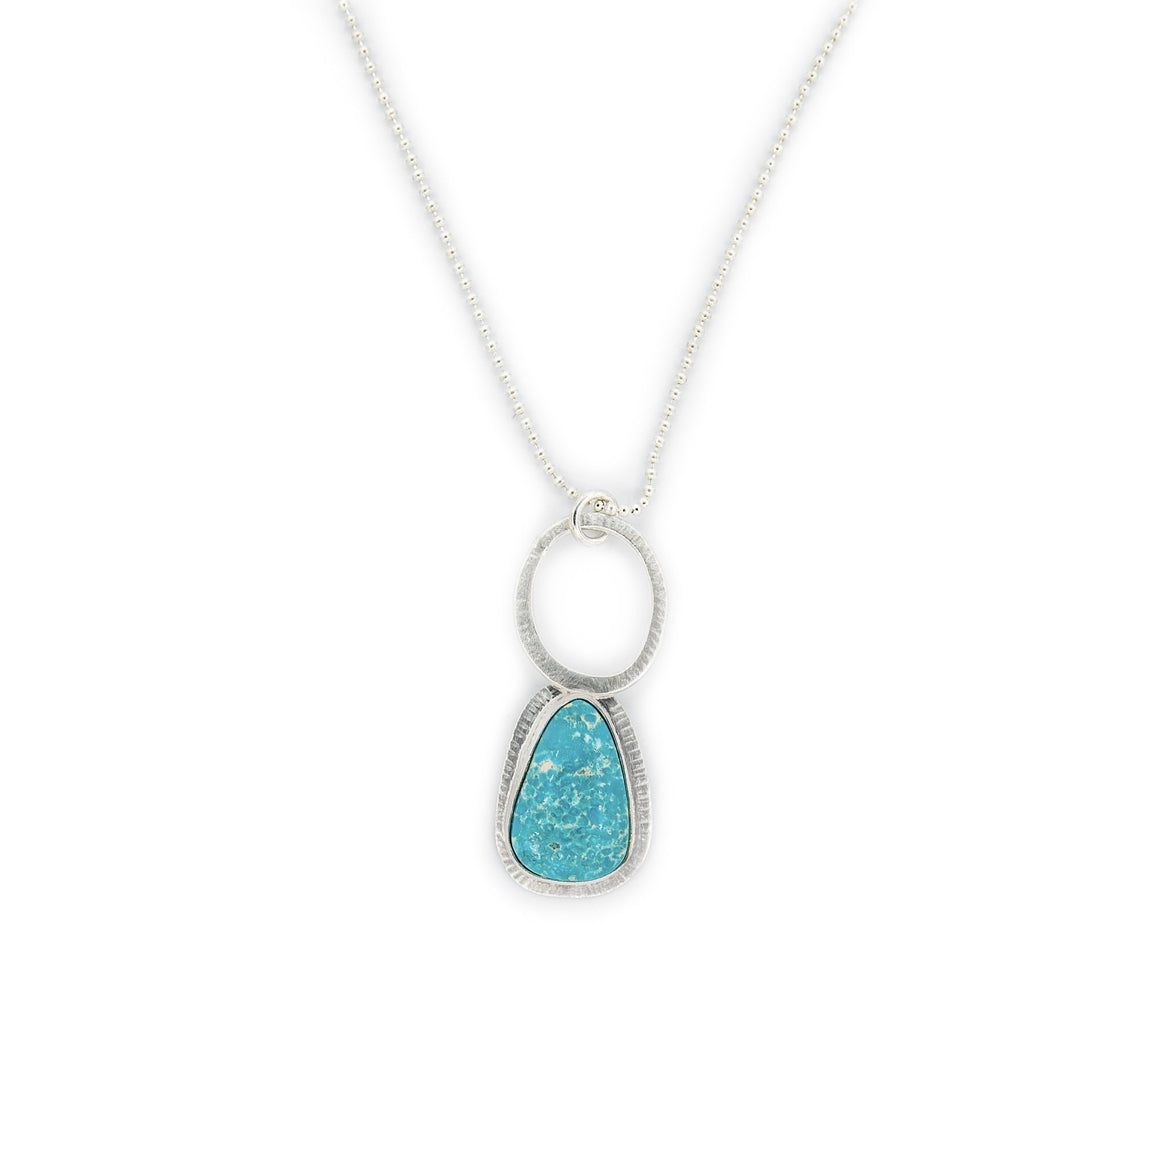 White Water Turquoise Necklace from Original Sin Jewelry